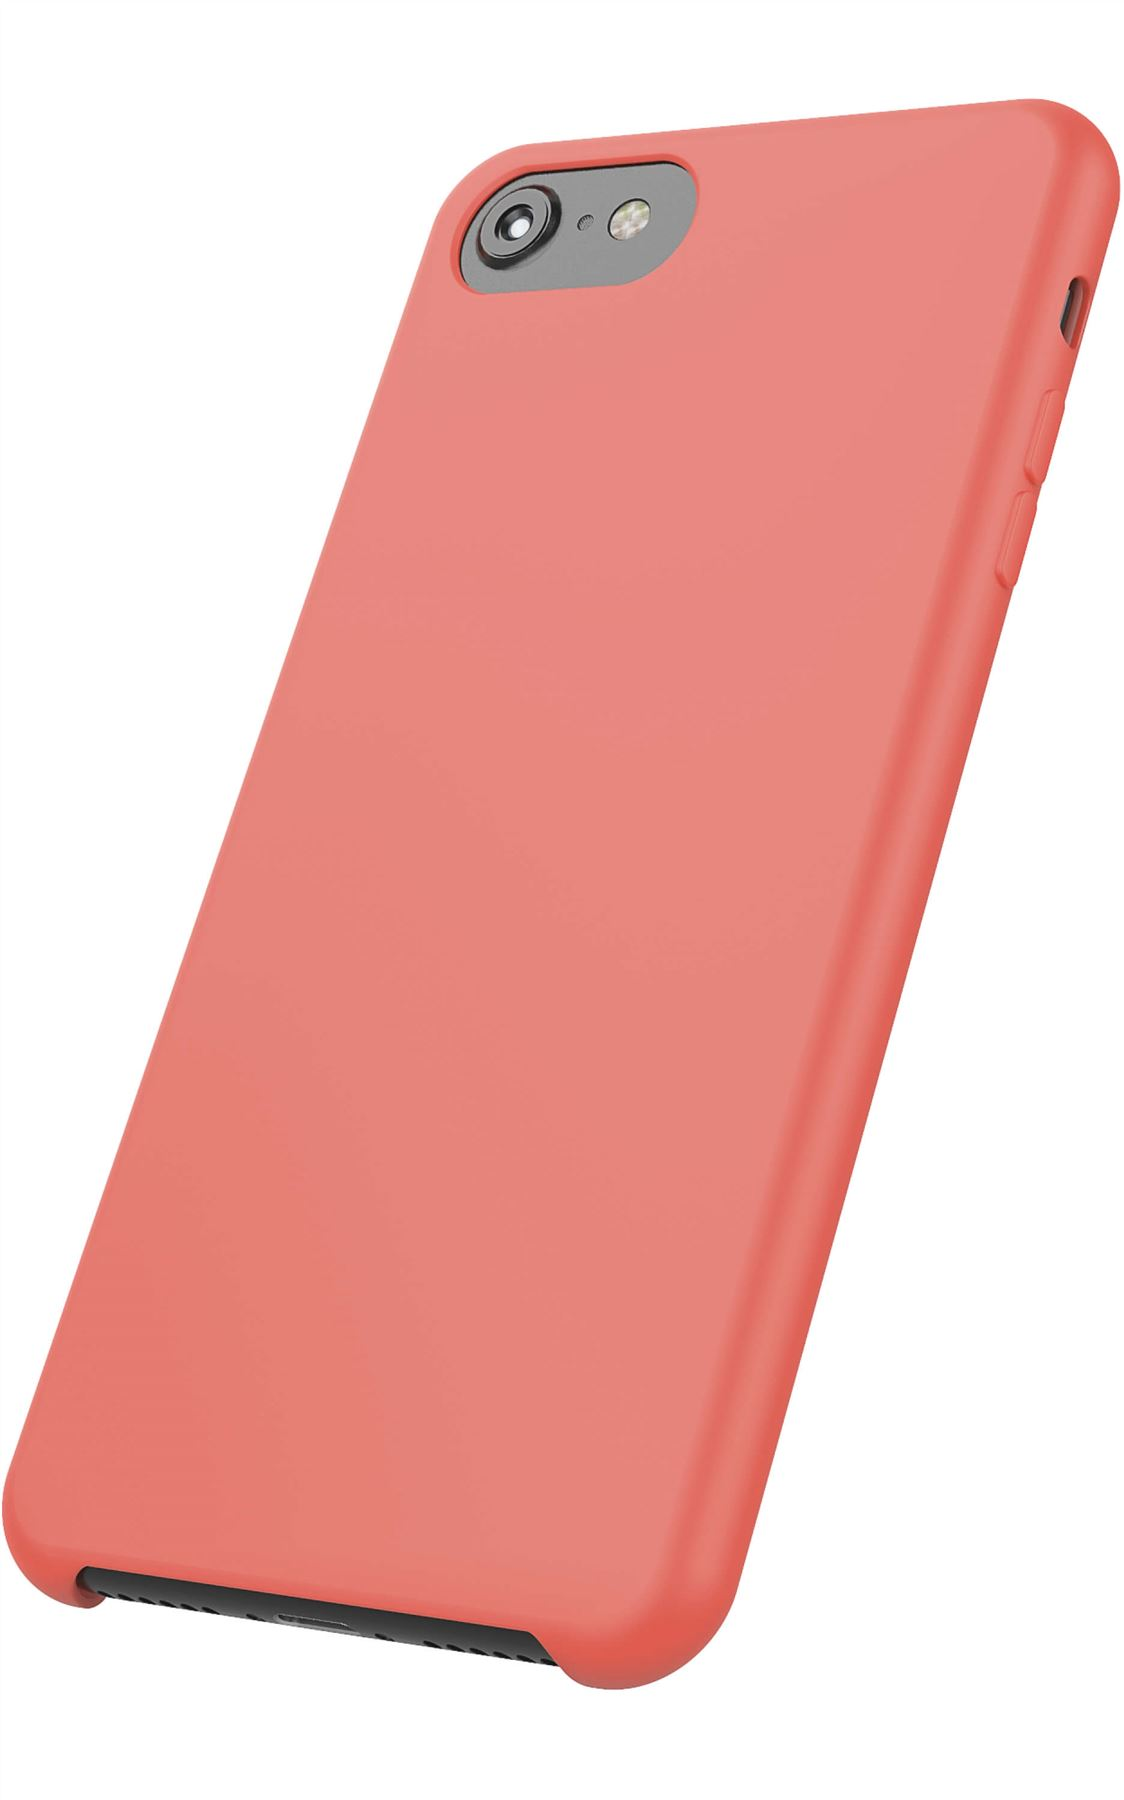 Liquid-Silicone-Shockproof-Case-For-Apple-iPhone-Soft-Matte-Back-Phone-Cover thumbnail 26